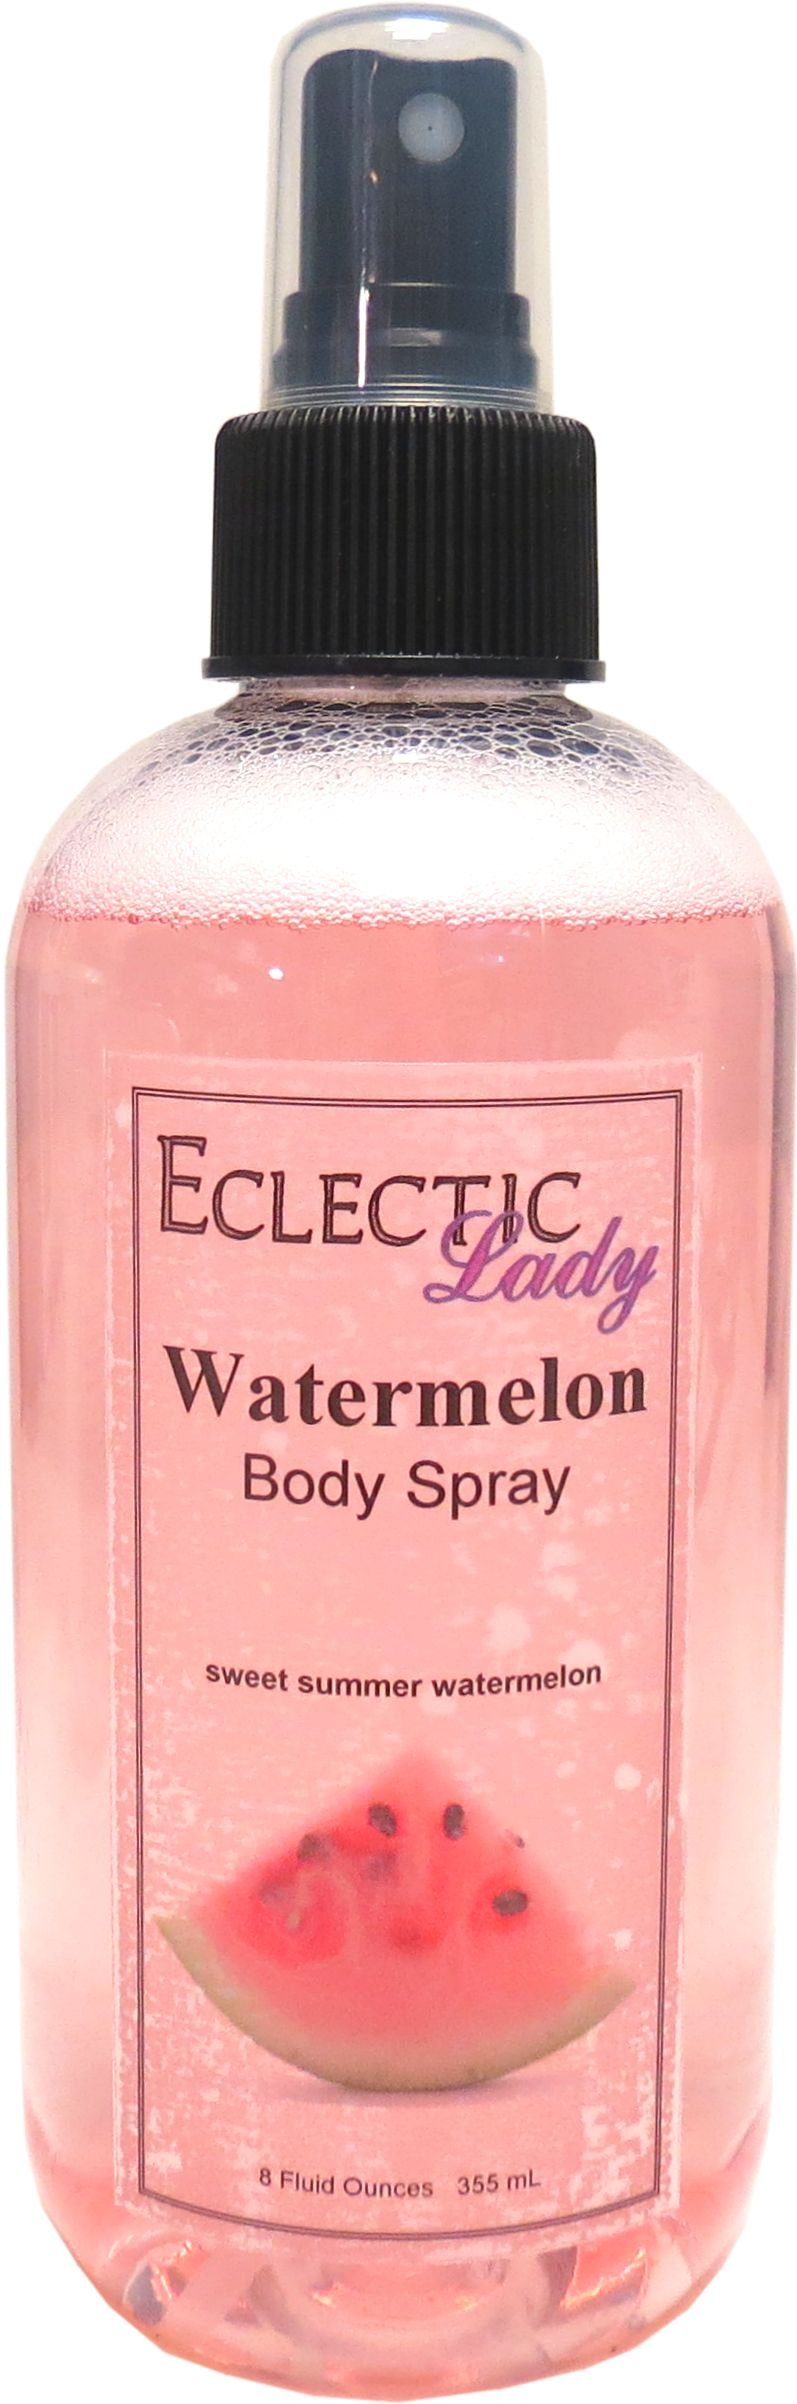 Watermelon Body Spray, 8 ounces